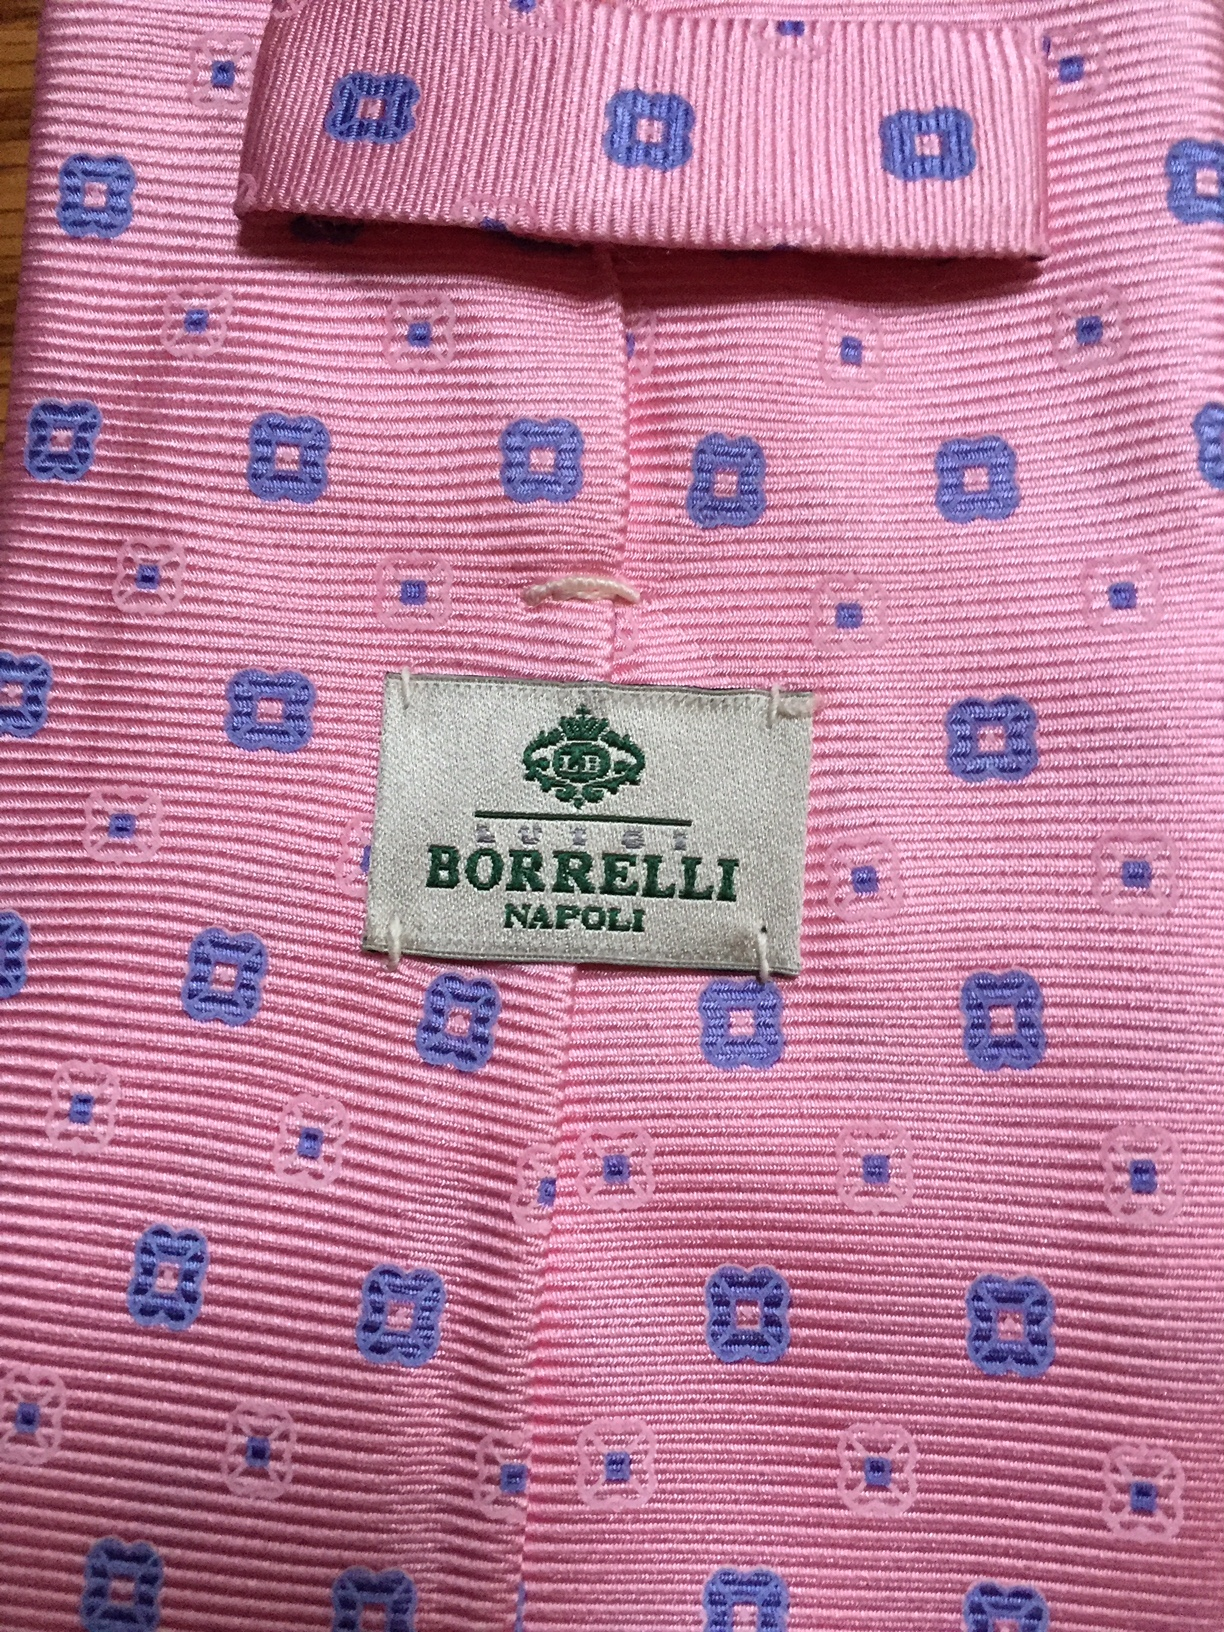 Borrelli Label 1